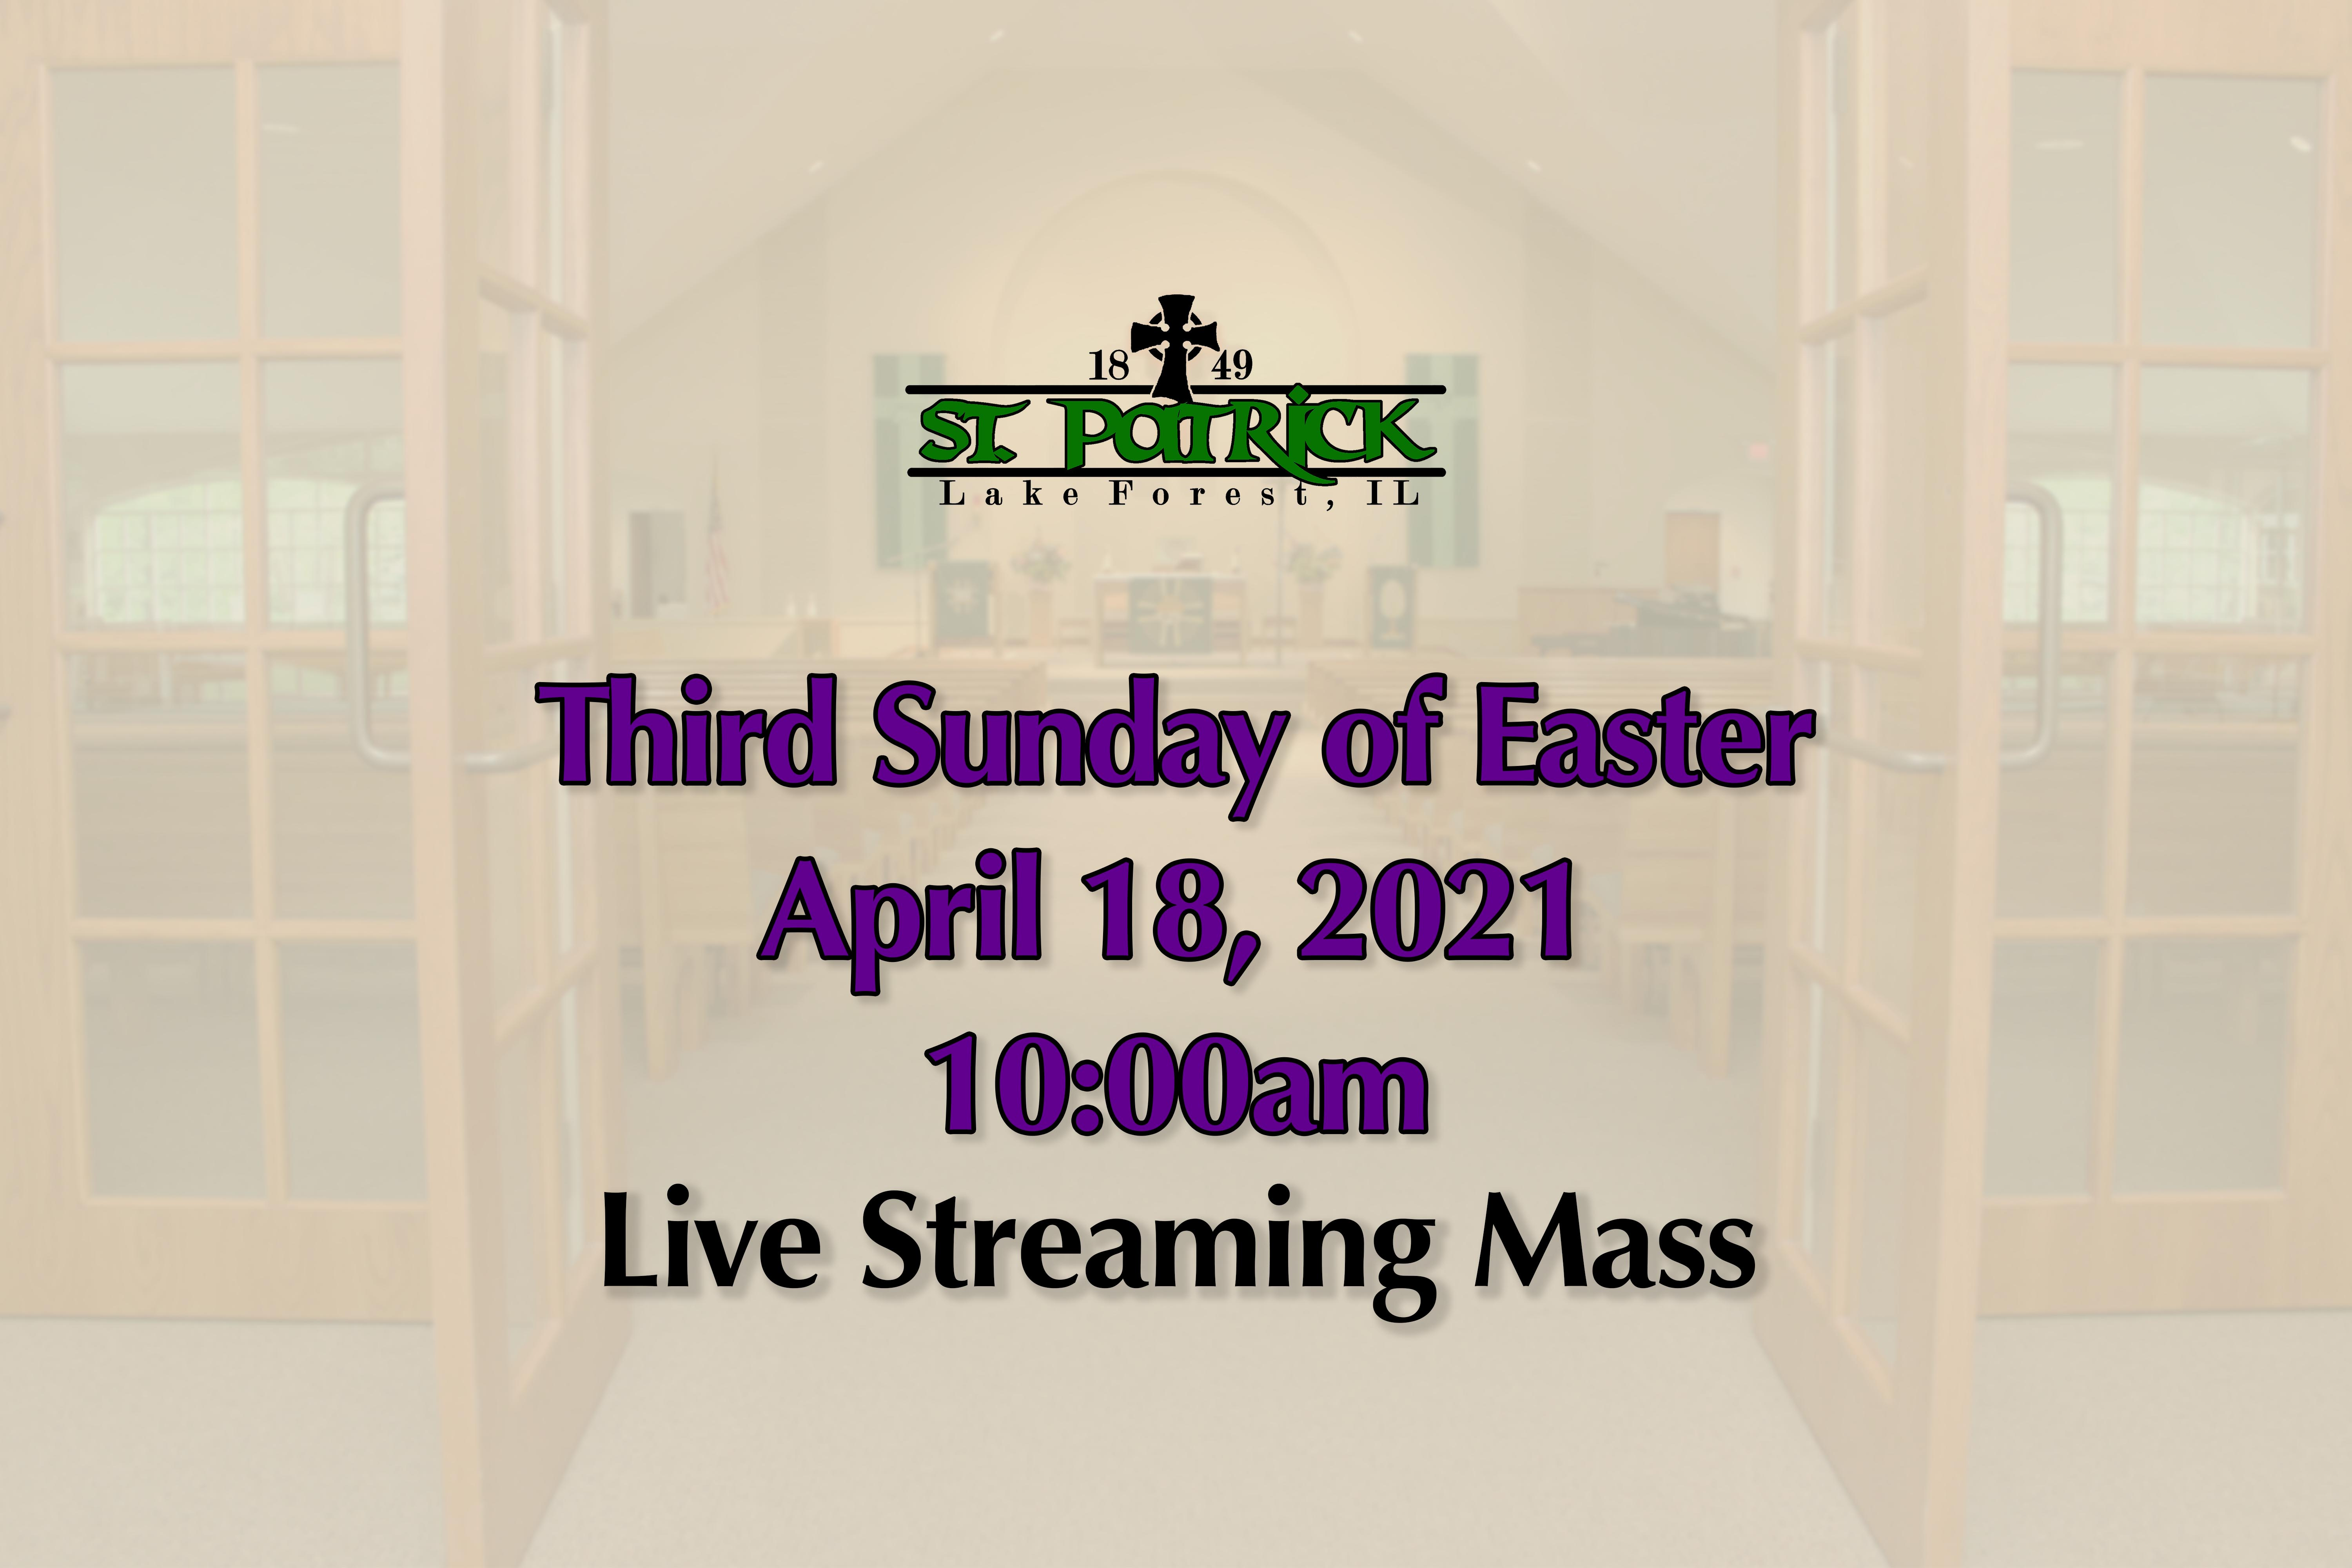 Live Streaming Mass 04-18-21 website ad